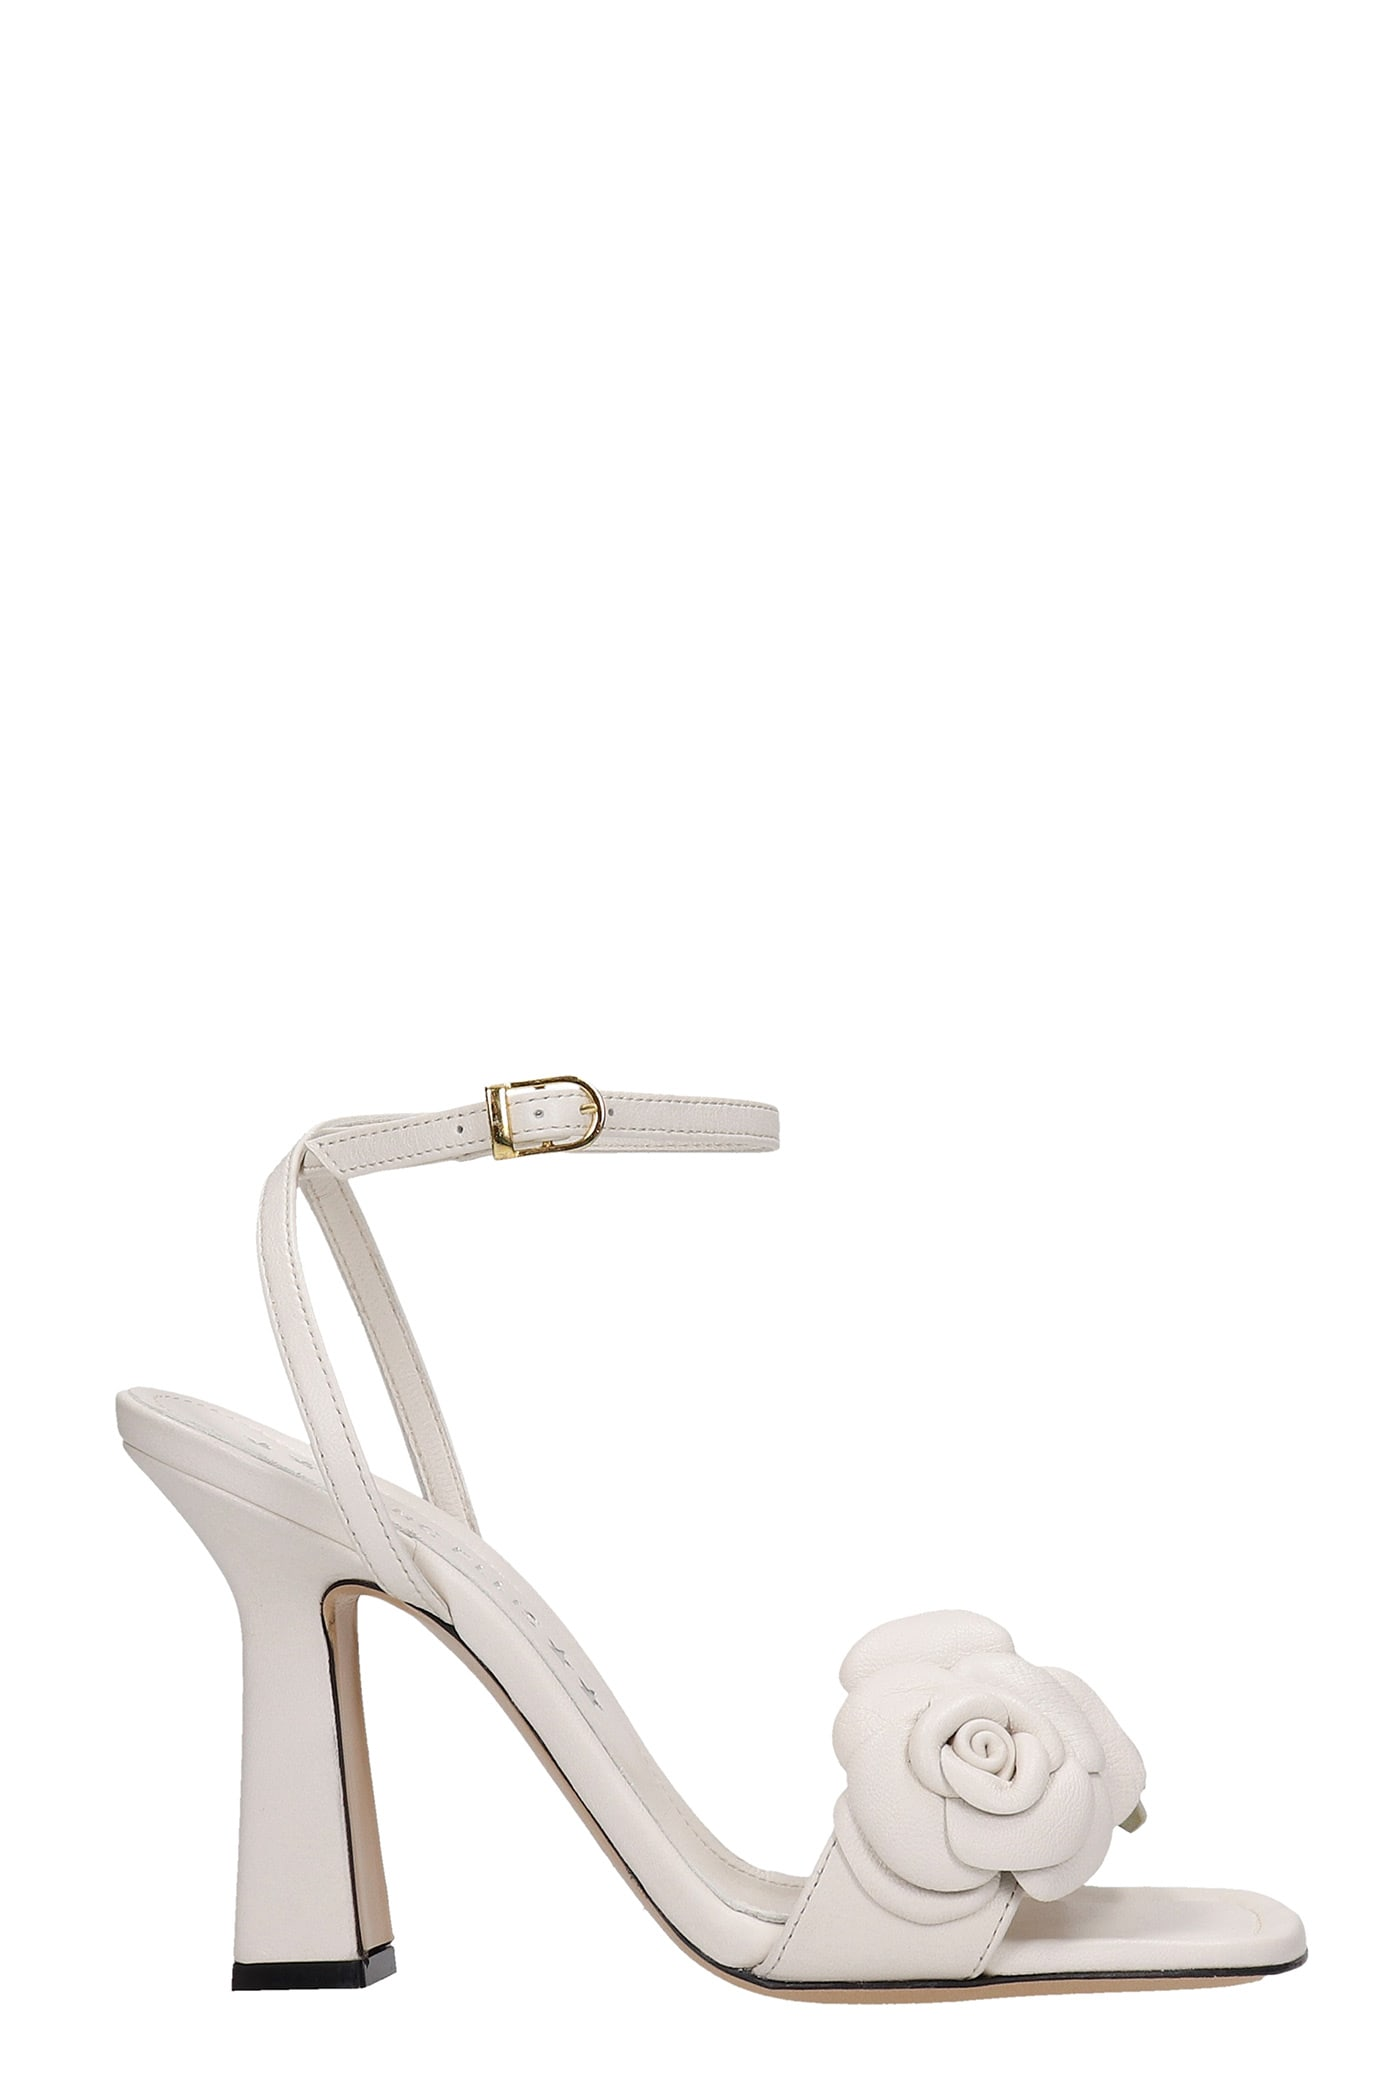 Emily Sandals In Beige Leather